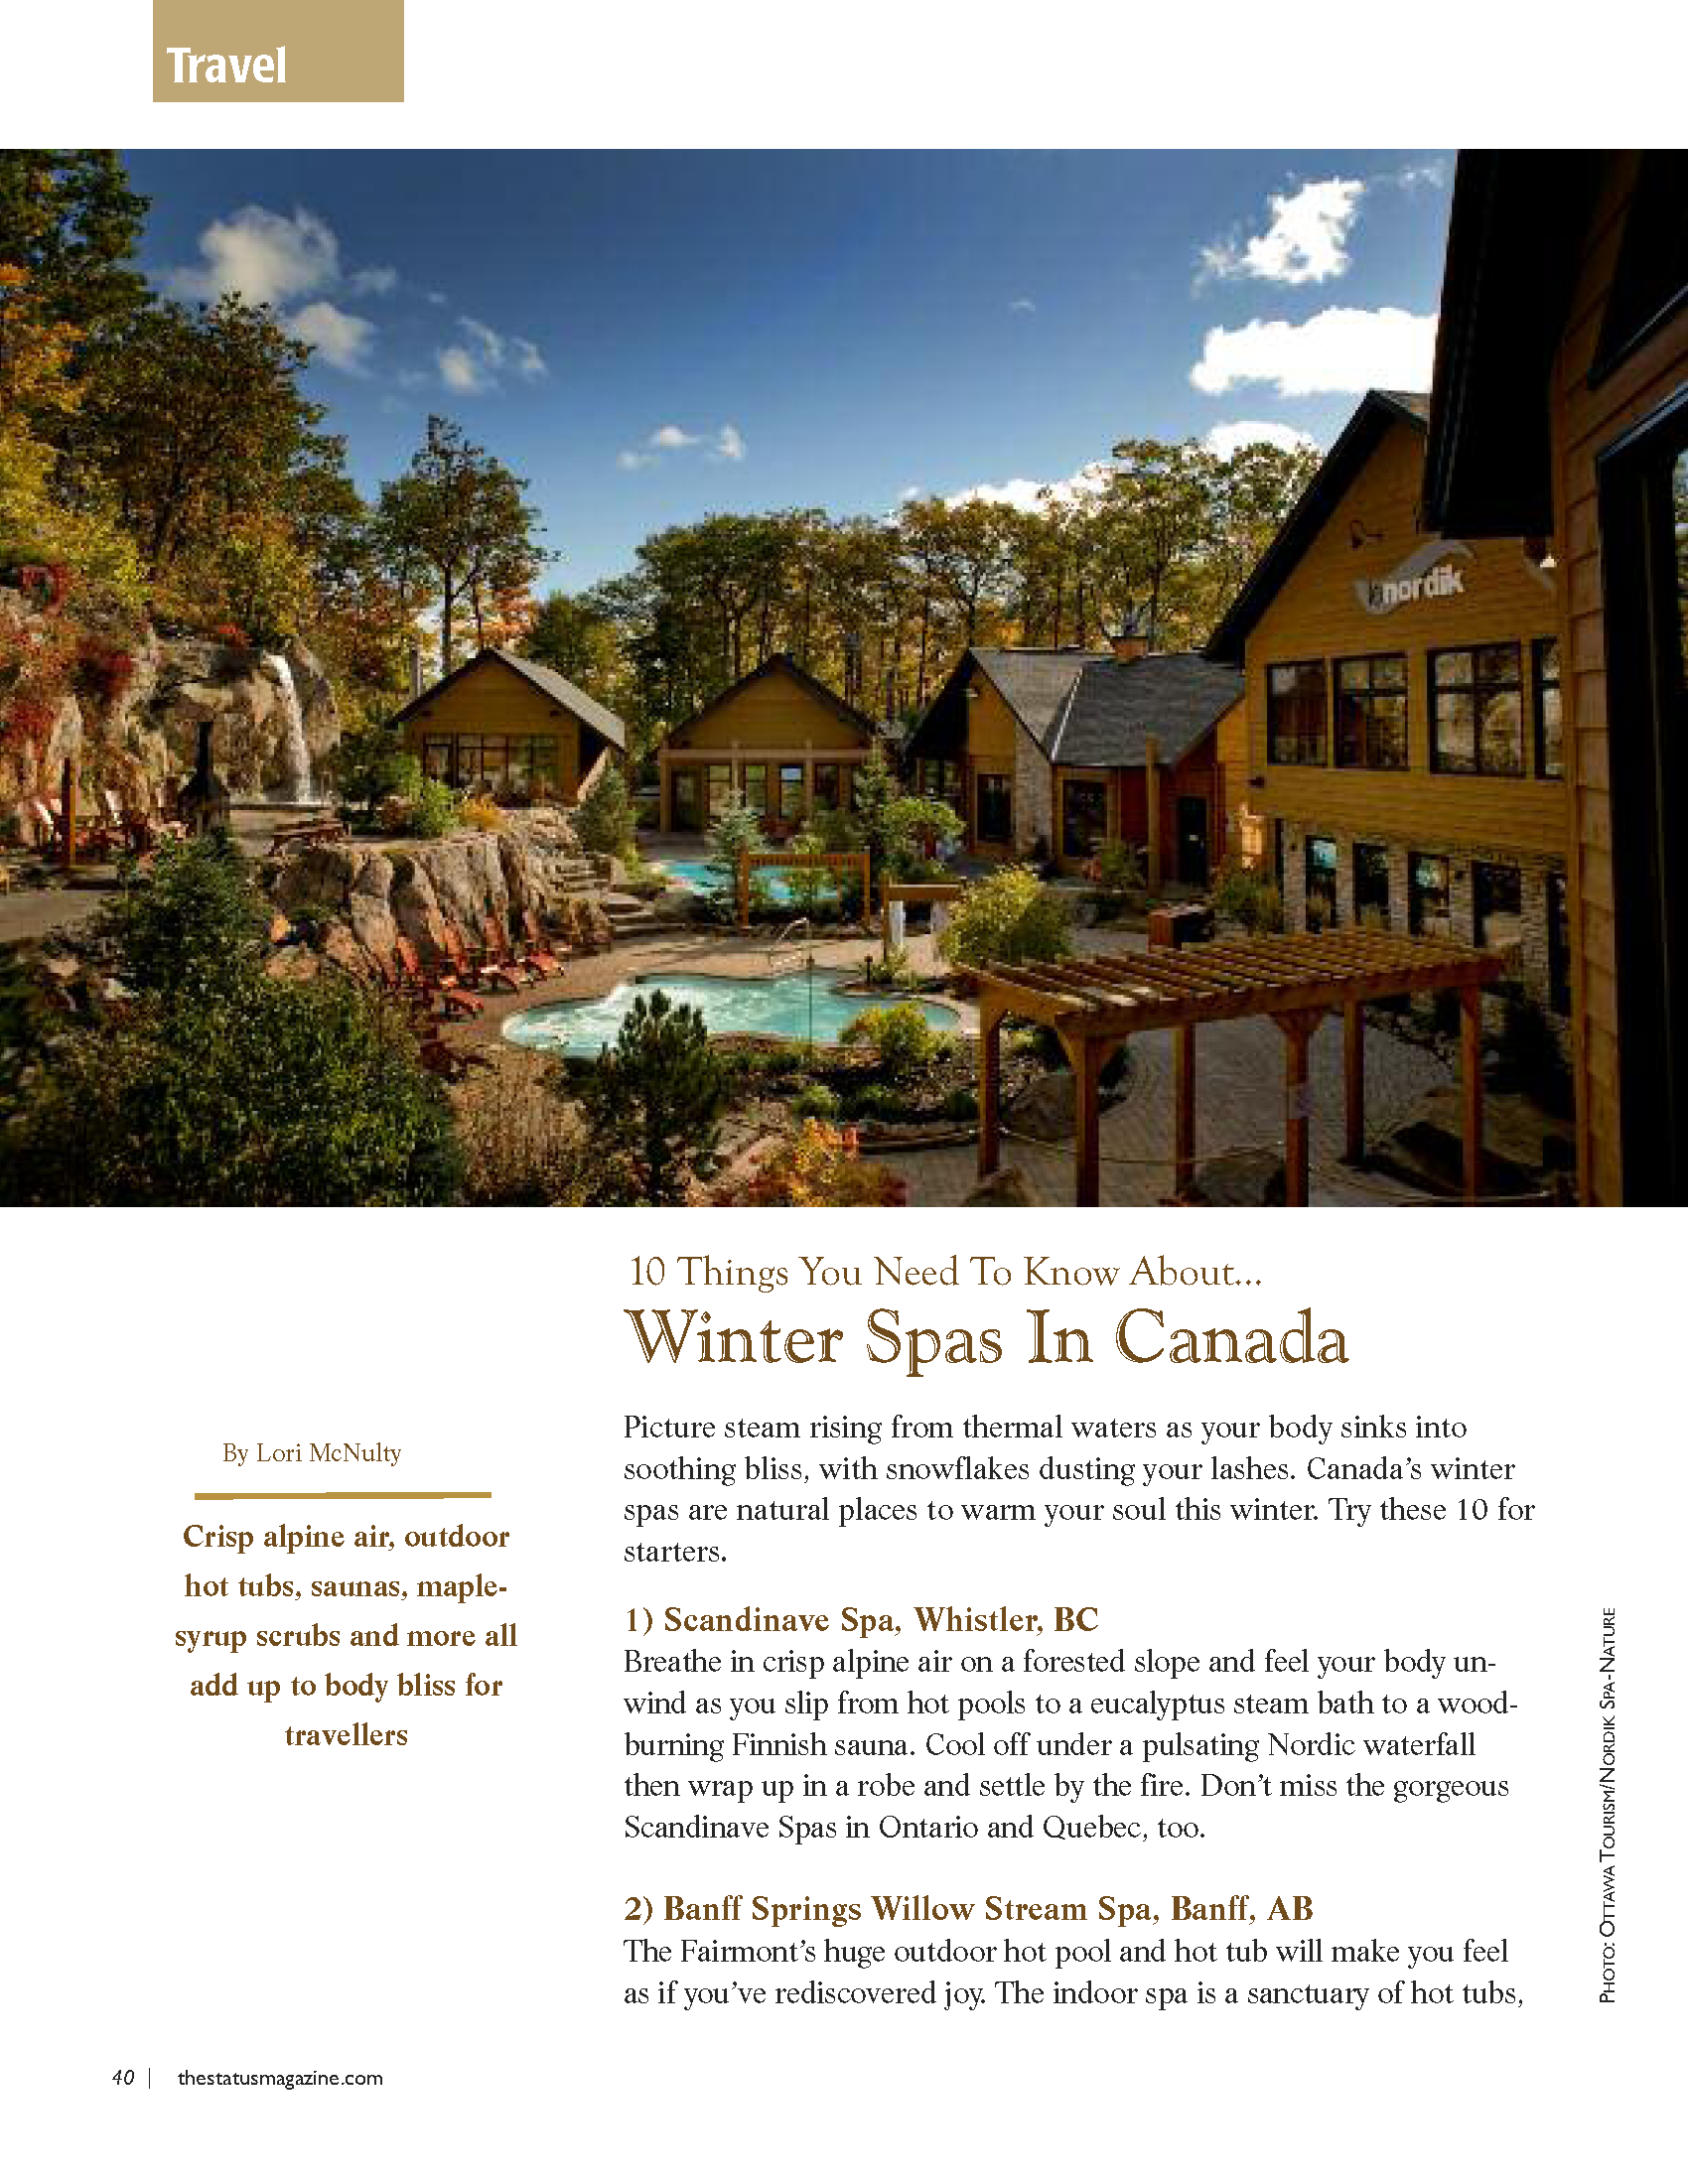 thestatusmagazine-v9-travel-winter-spas-p1-40